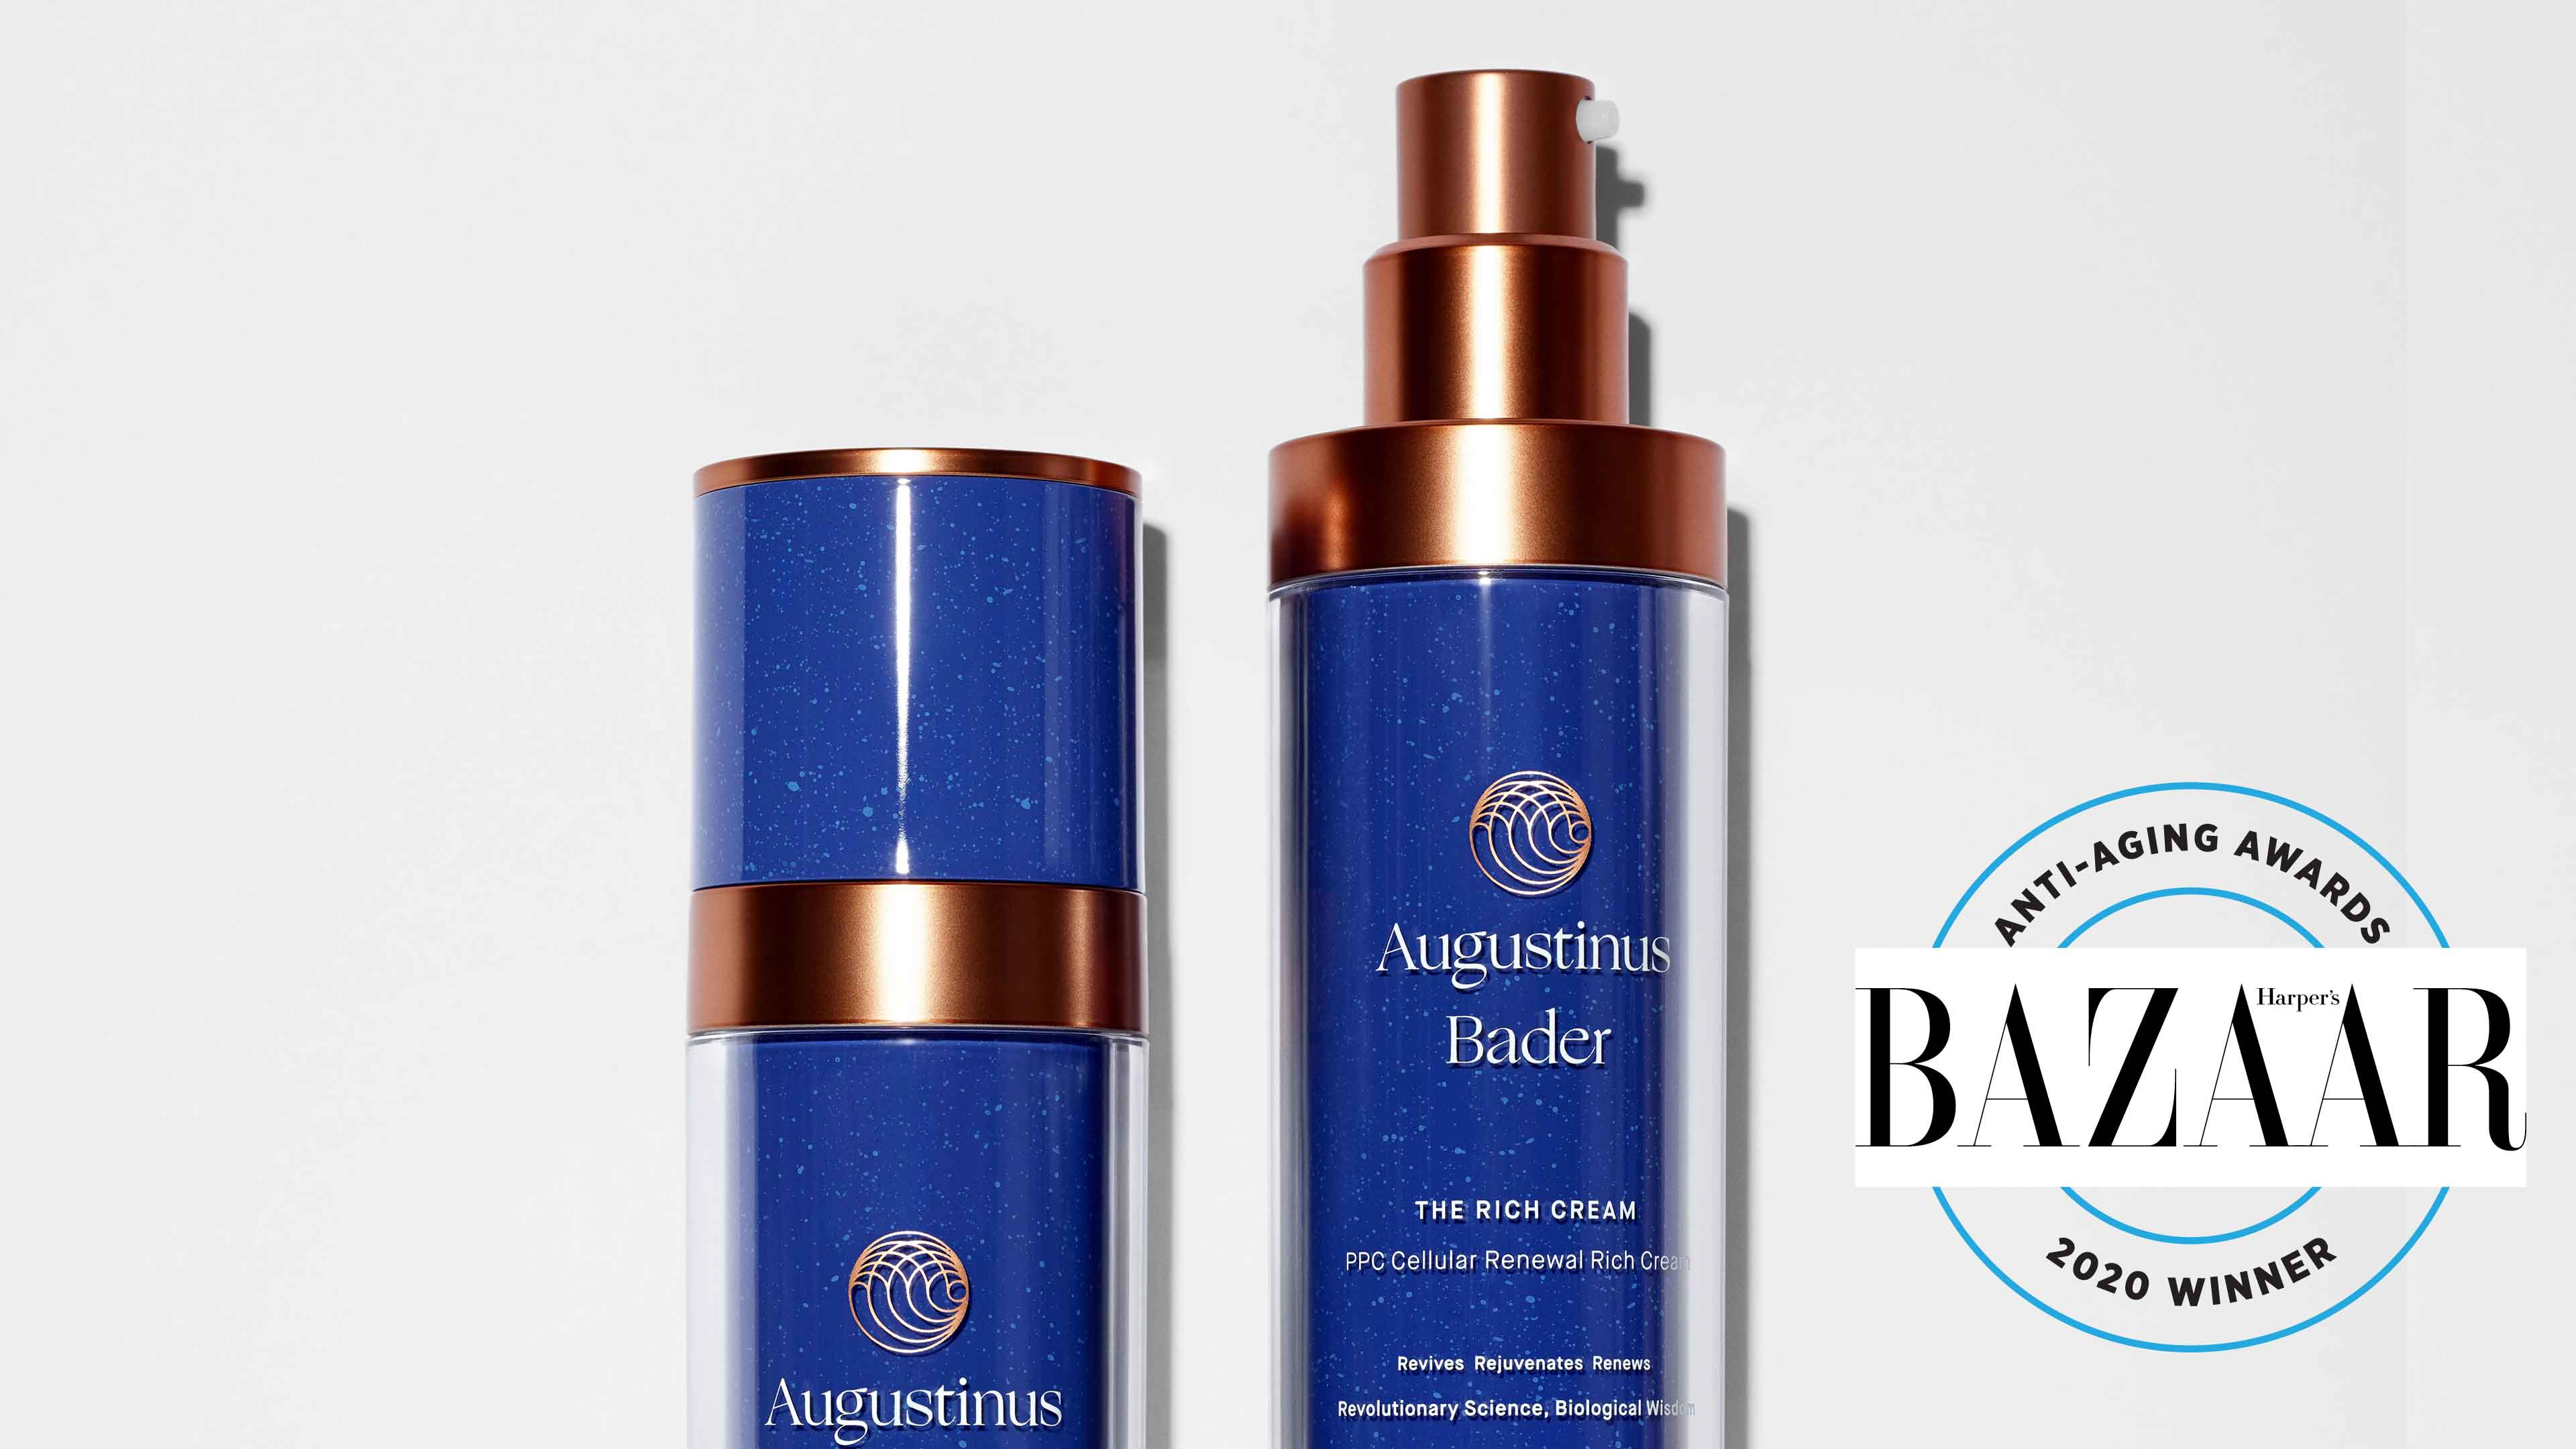 Harper's Bazaar: The Anti-Aging Beauty Awards 2020